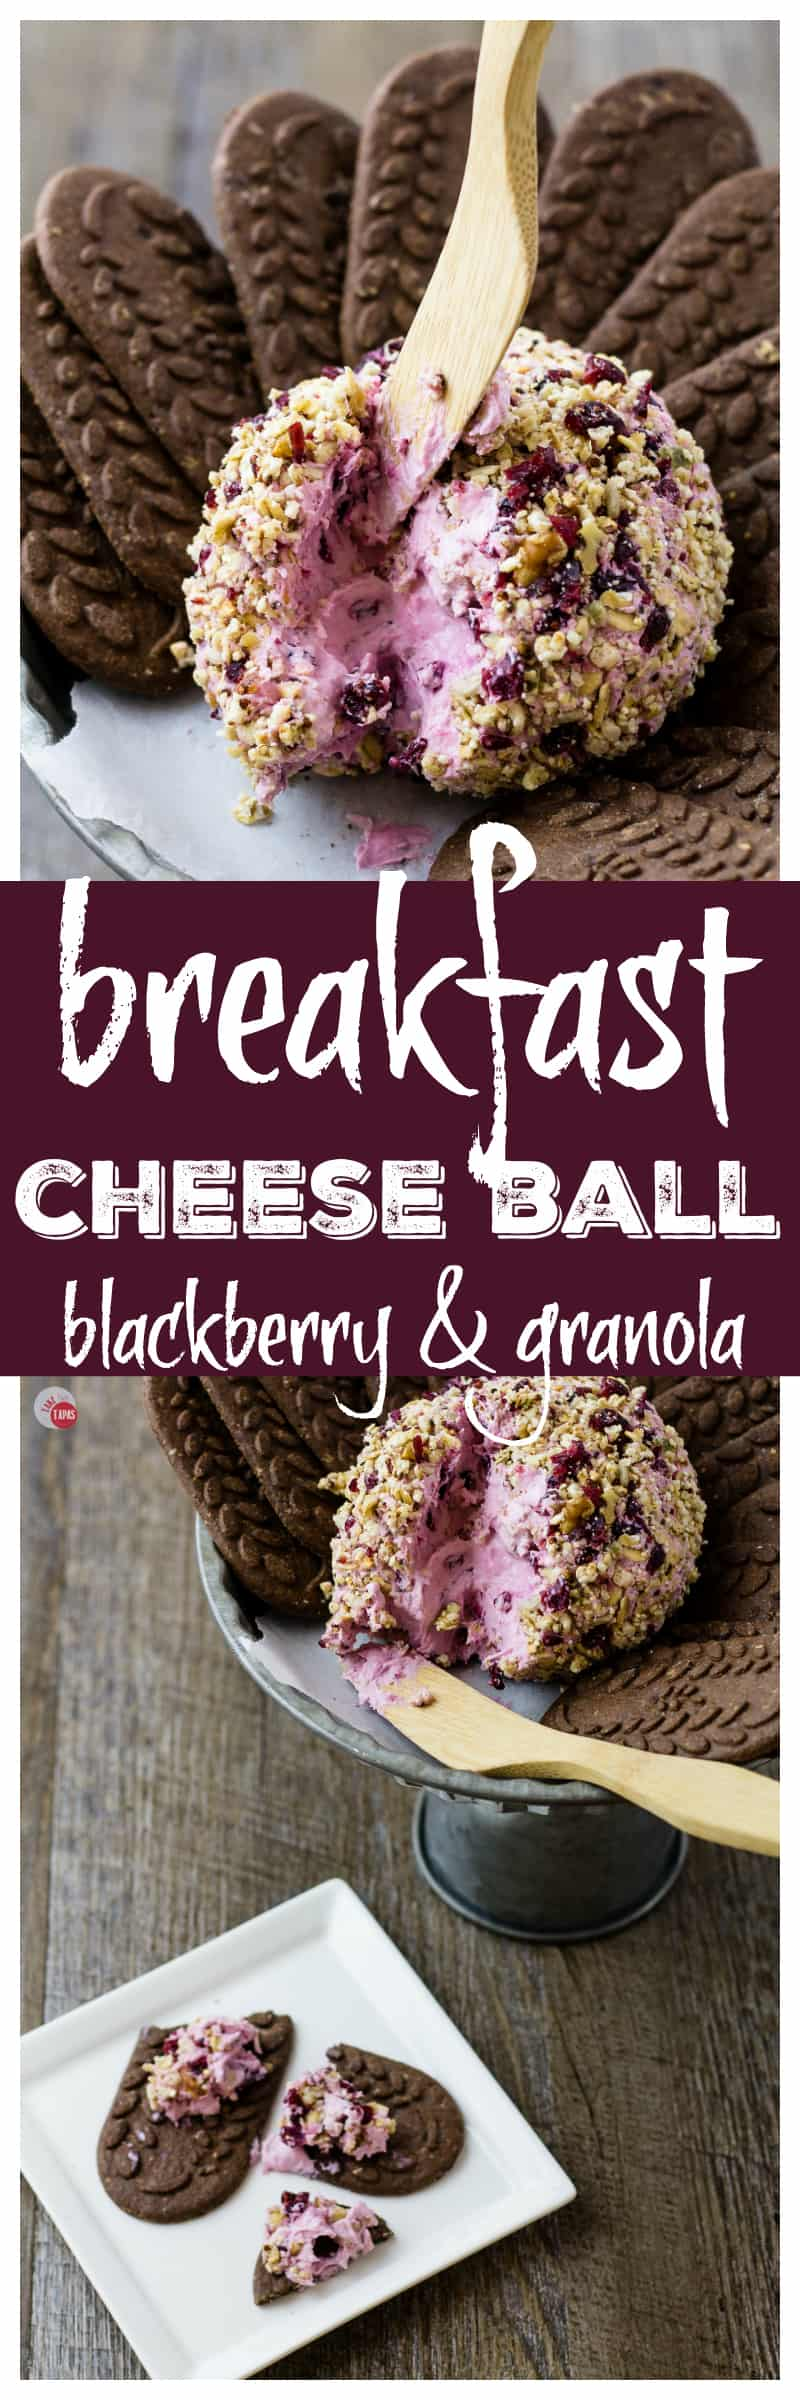 Breakfast Cheese Ball | Take Two Tapas | #Breakfast #Blackberry #Granola #CheeseBall #Brunch